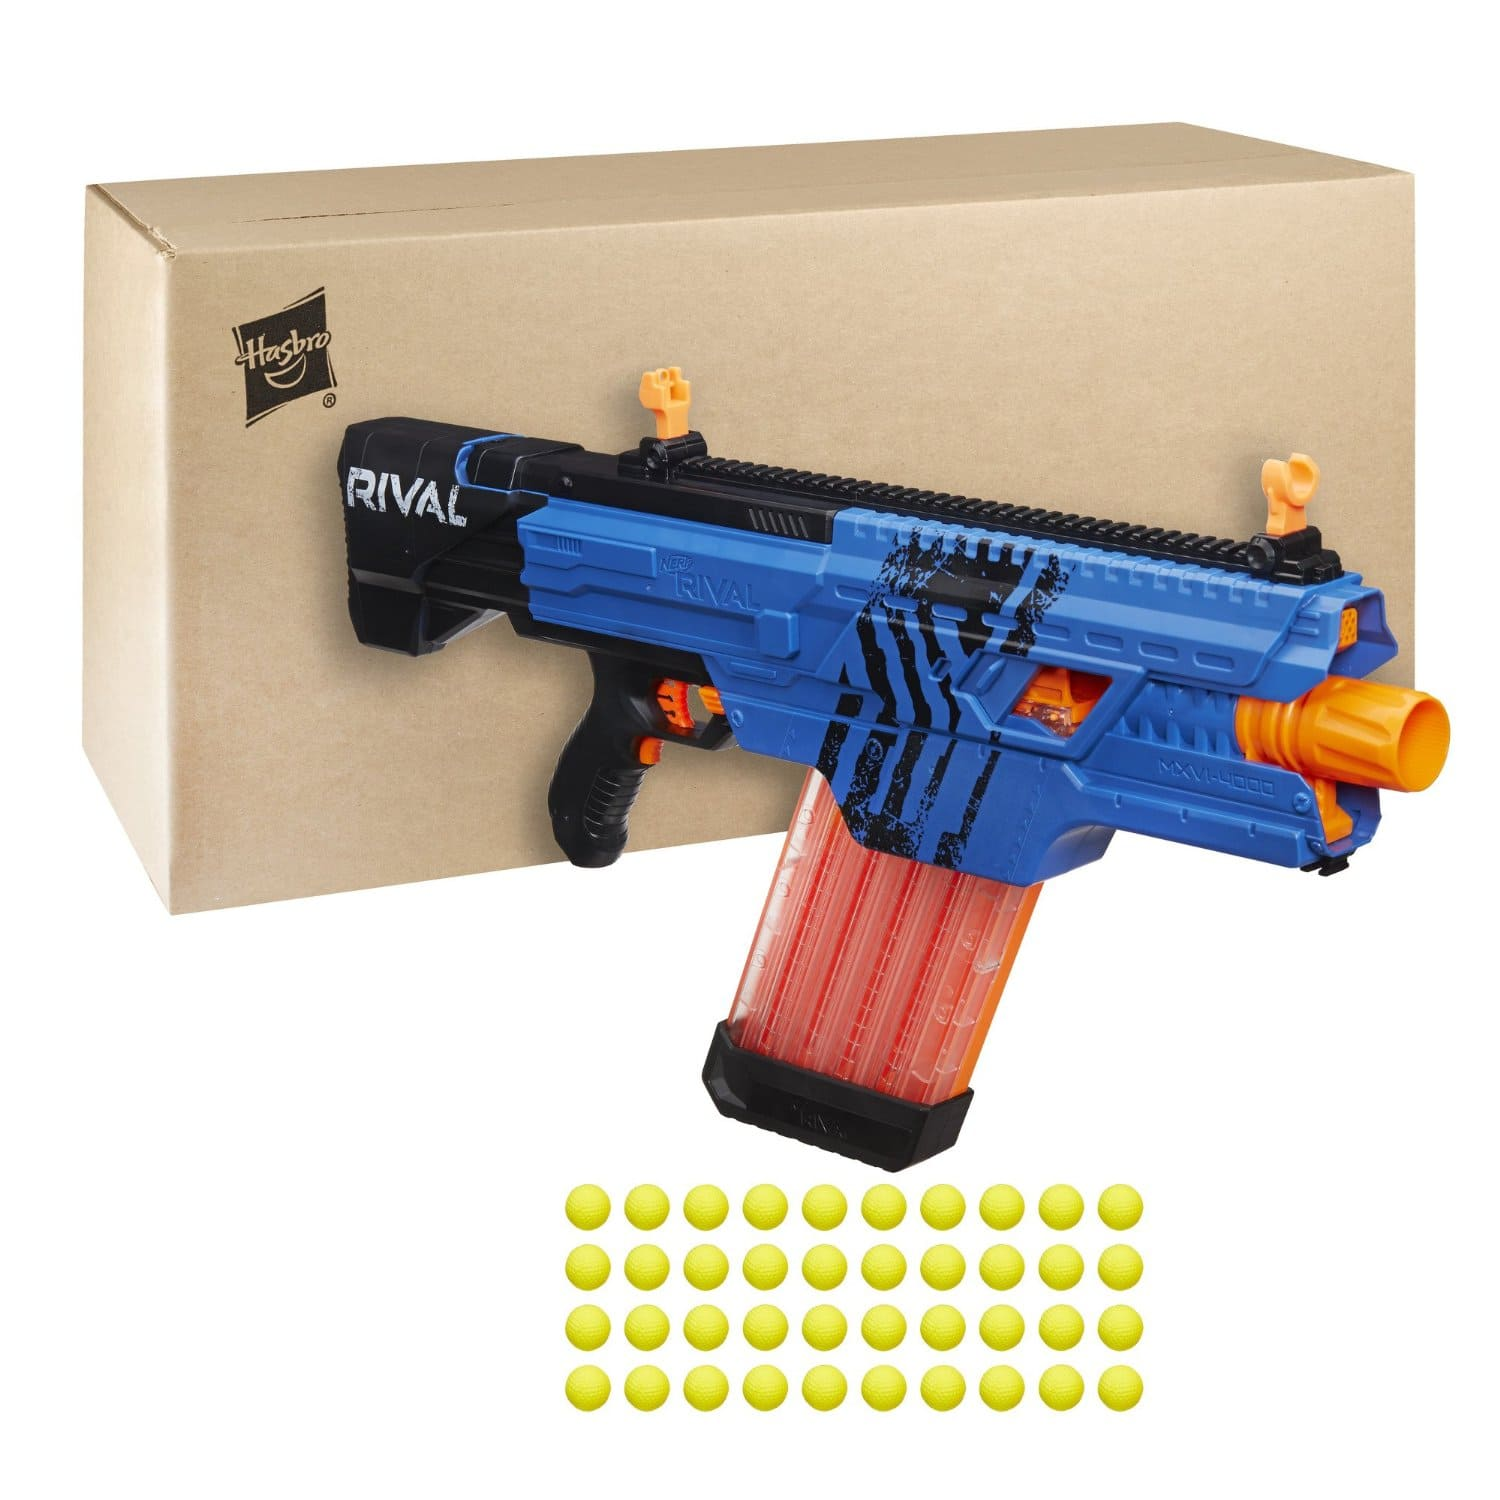 This looks like the Grand Daddy of Nerf Guns, check out all the bullets it  will hold! My boys would love this!